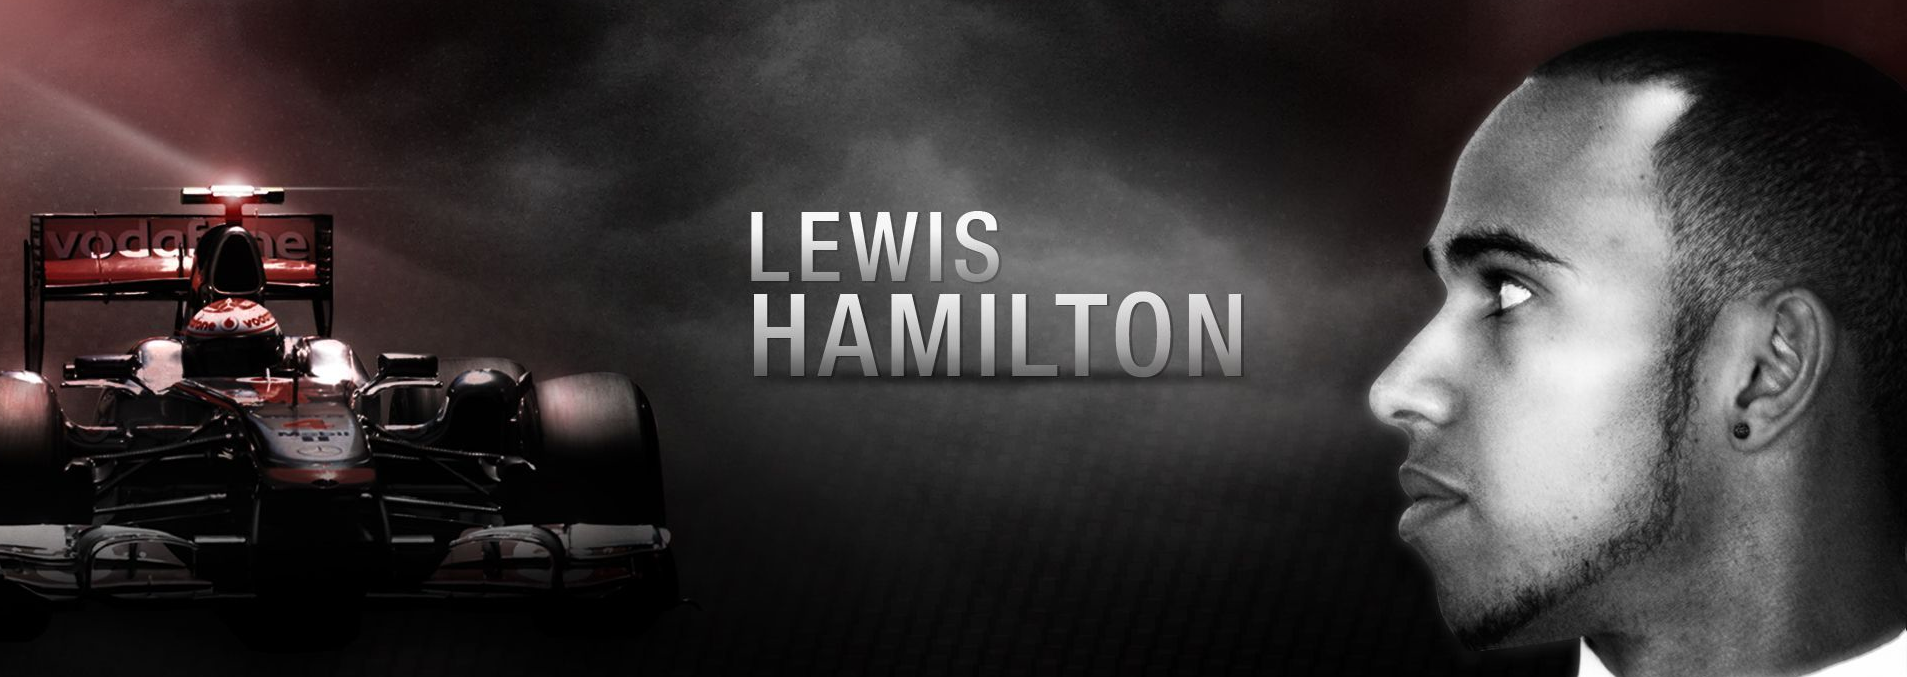 Three-time Formula One World Champion Lewis Hamilton will take on a new role as a featured character in the latest installment of the mega game franchise-Call of Duty: Infinite Warfare. Rumors have been swirling for months that Hamilton will be featured in the game that has seen other celebrity appearances in the past to include Kevin Spacey and Sarah Michelle Gellar.